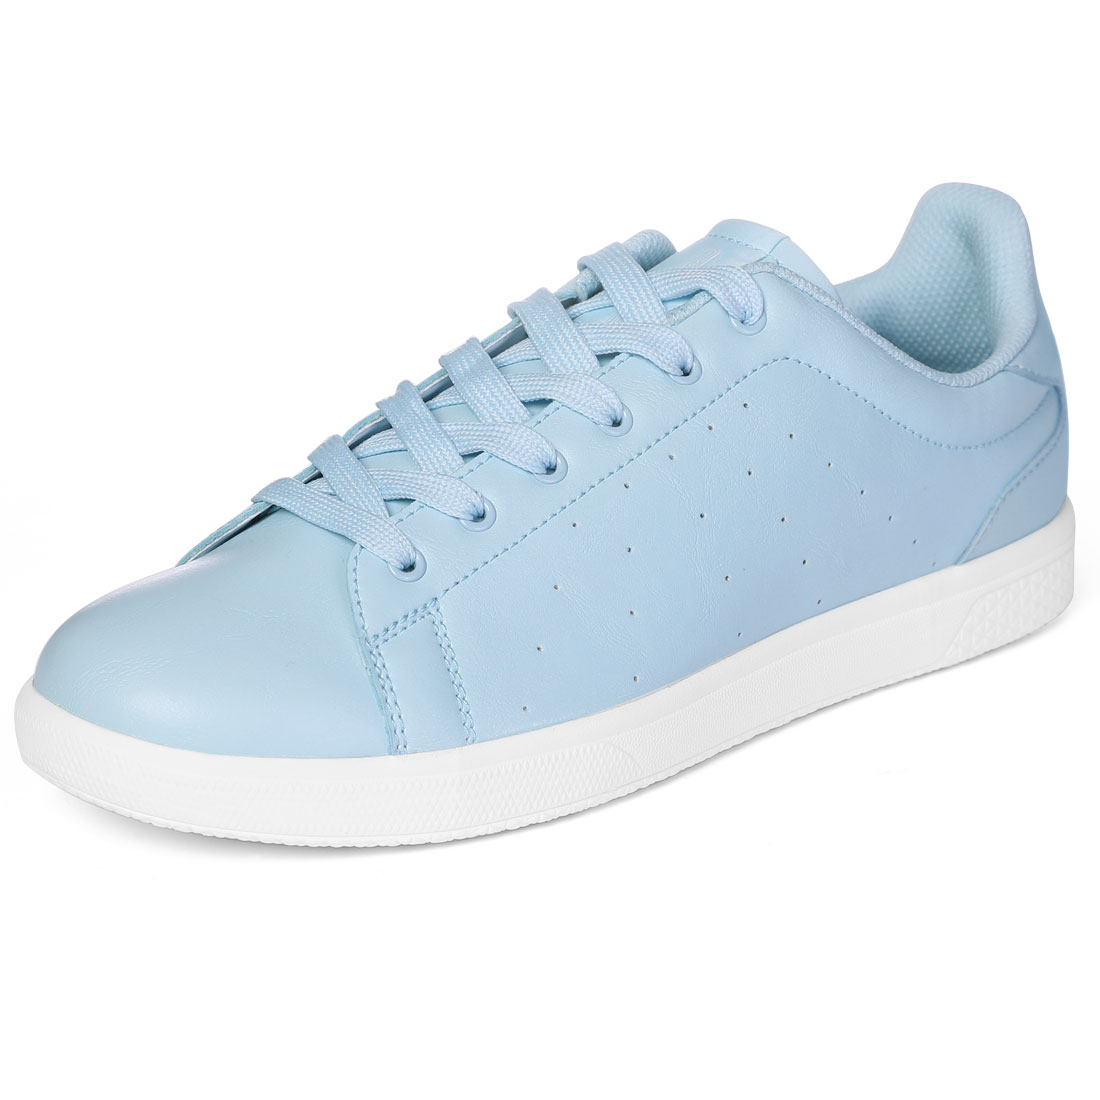 PYPE Women Round Toe Low Top Lace Up Sneakers Blue US 10